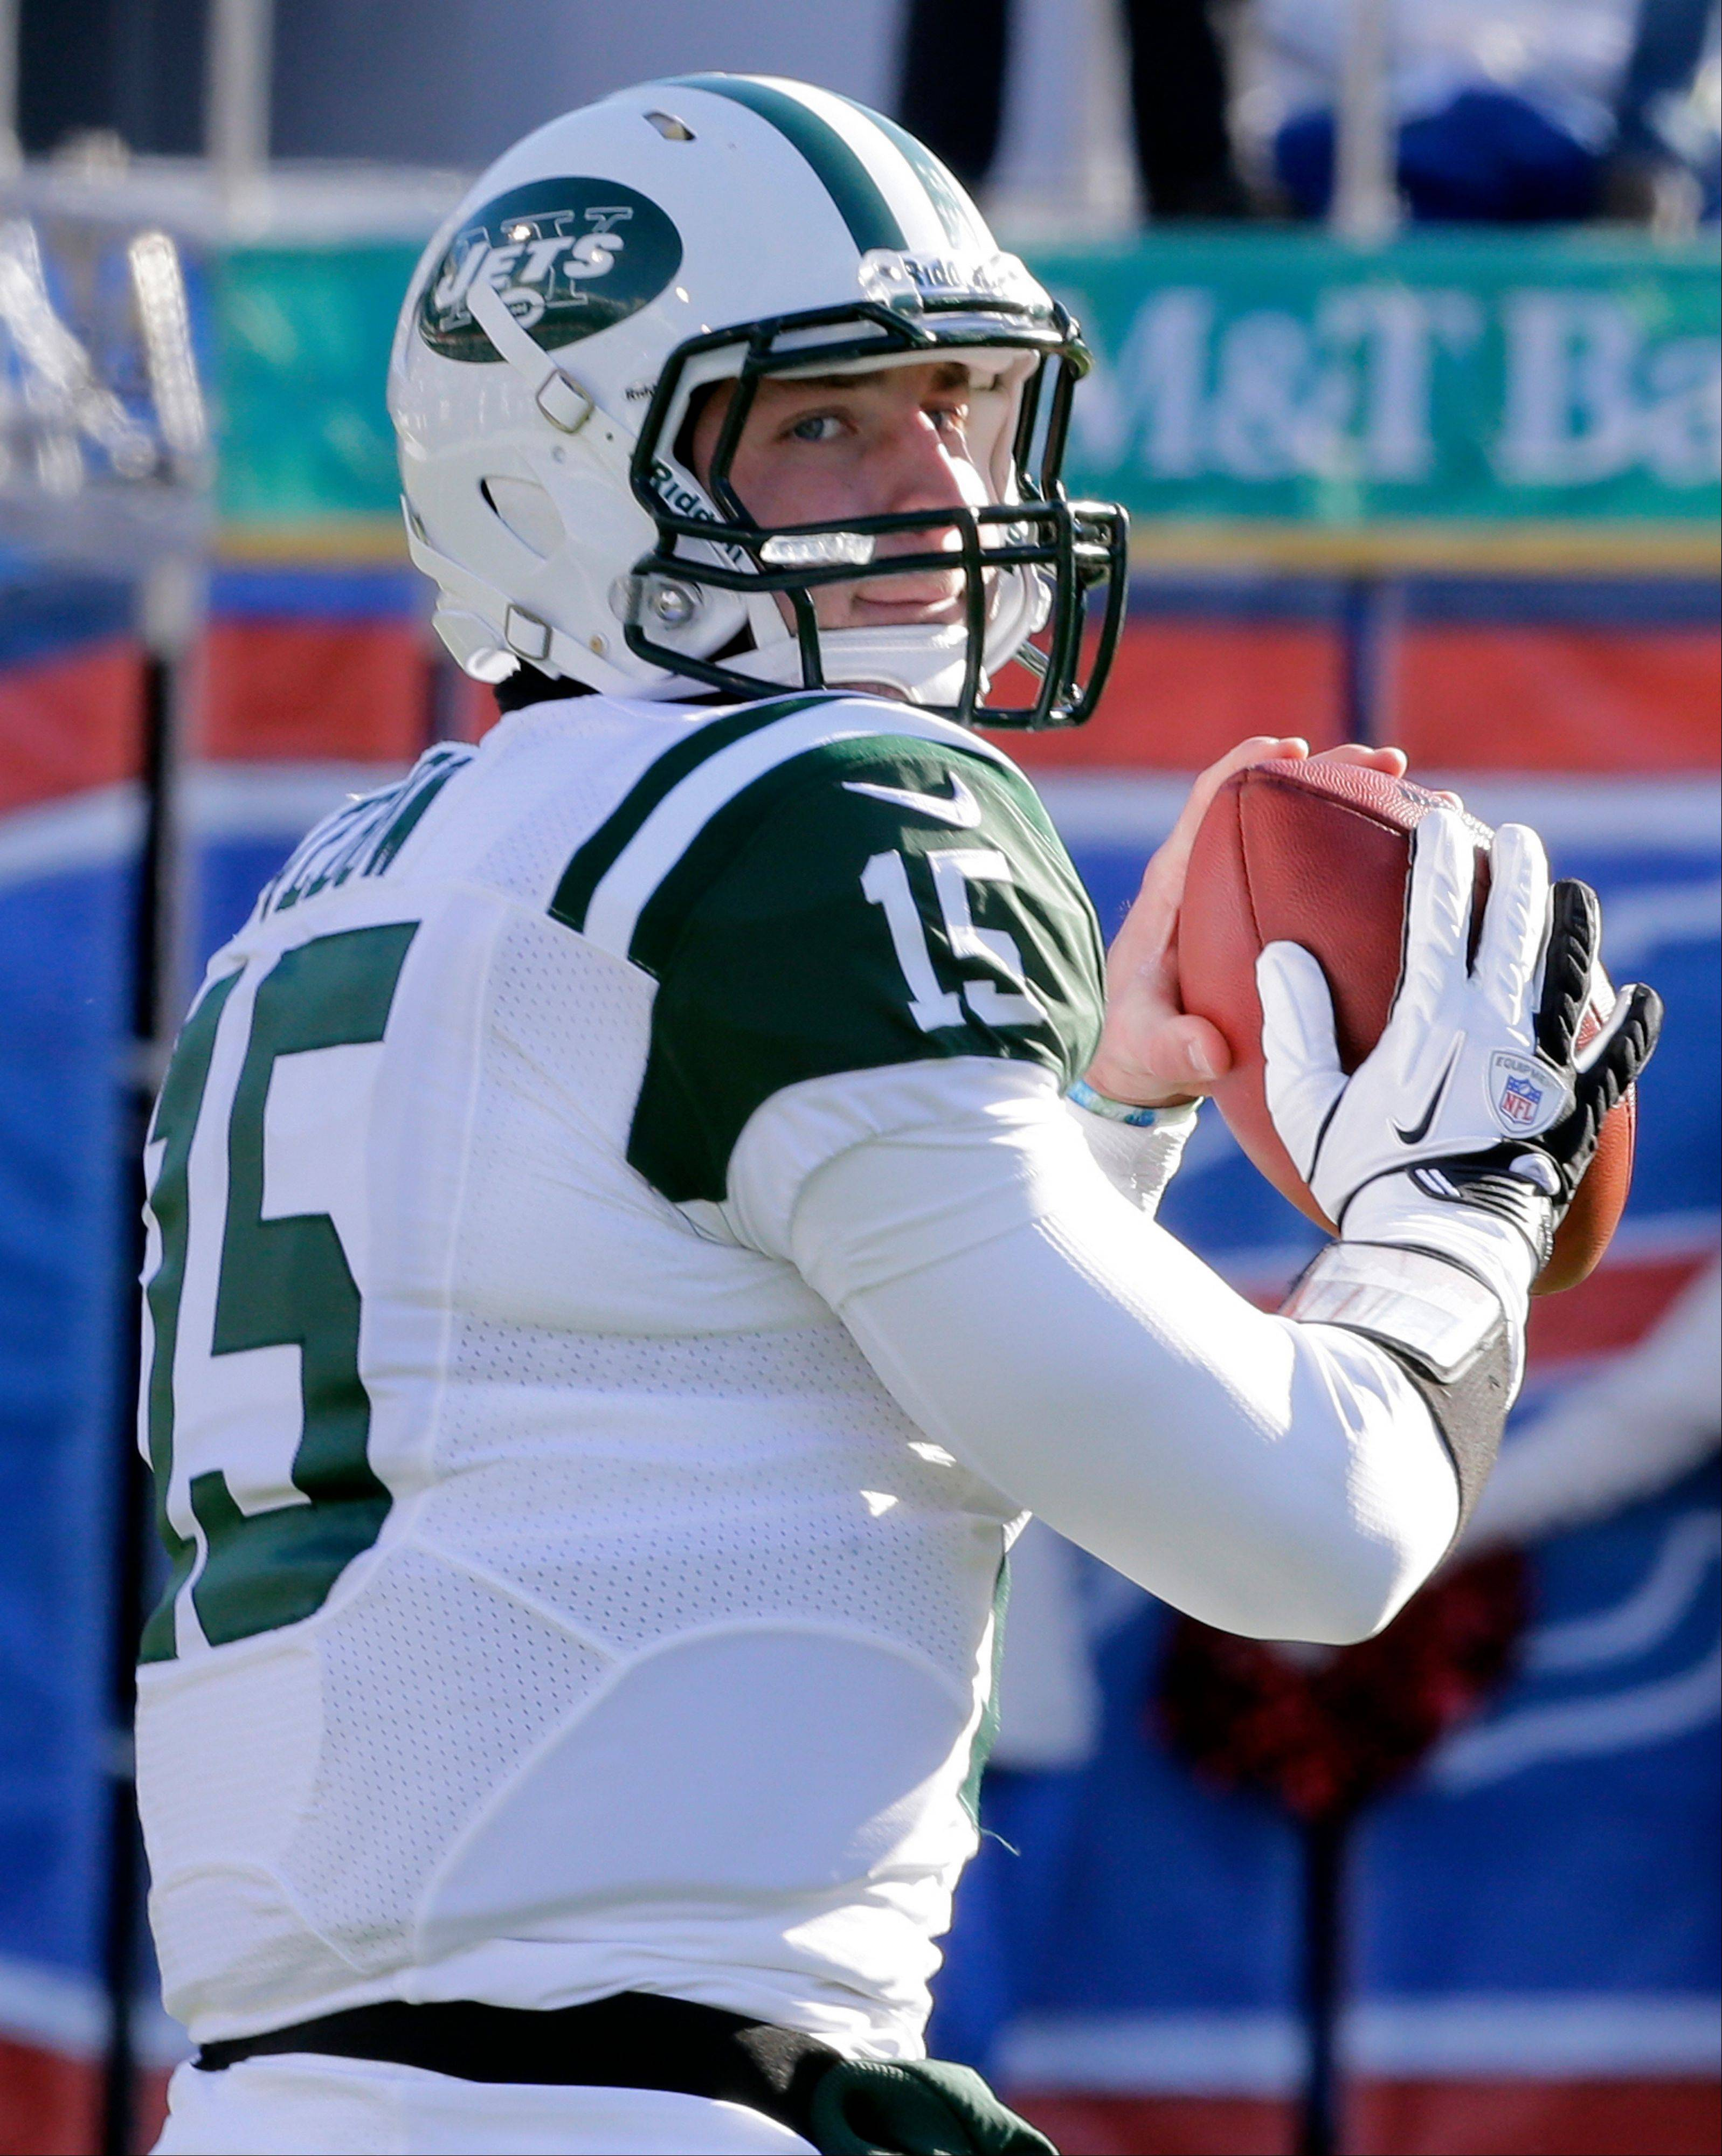 It's unclear if any NFL team will give former Brocos and Jets quarterback Tim Tebow an opportunity for next season